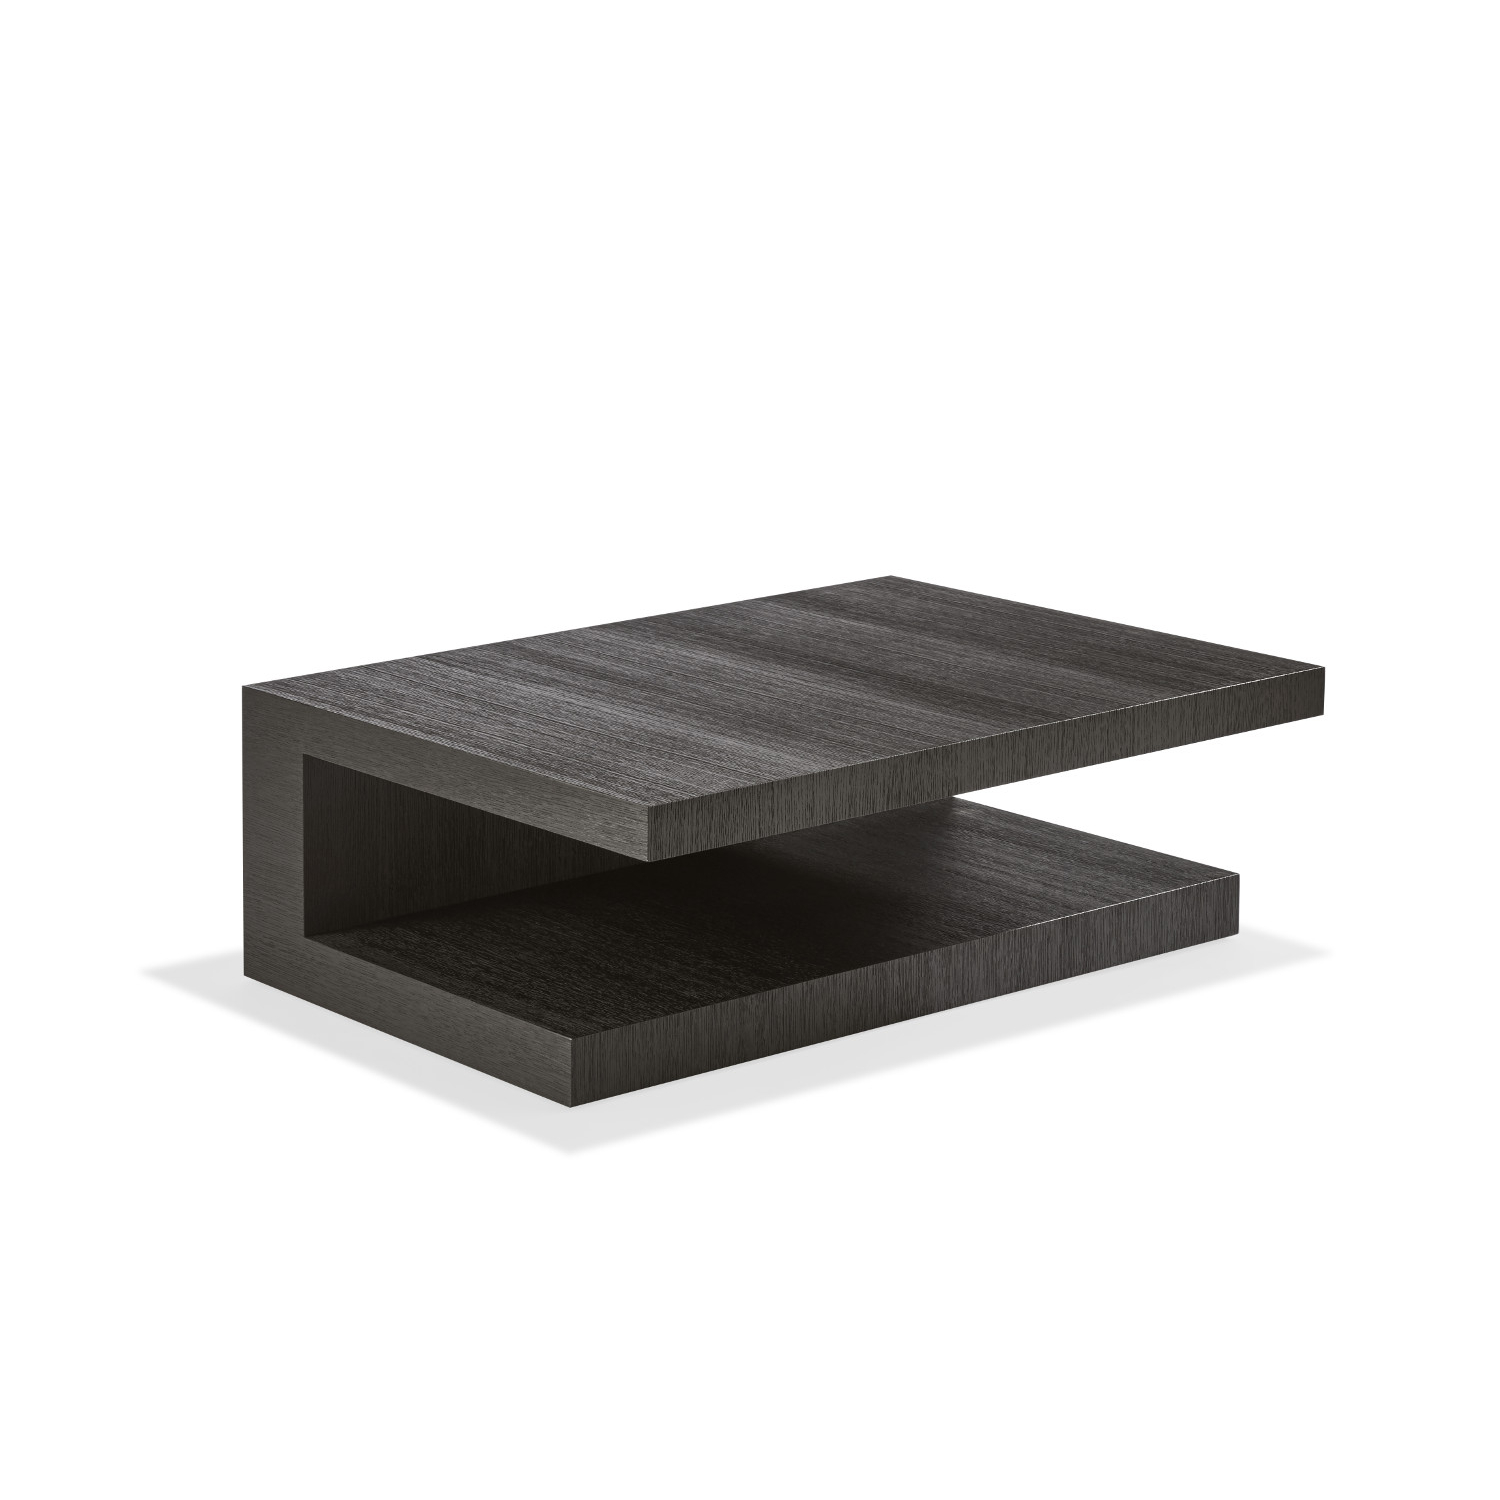 CANTI - Coffee table